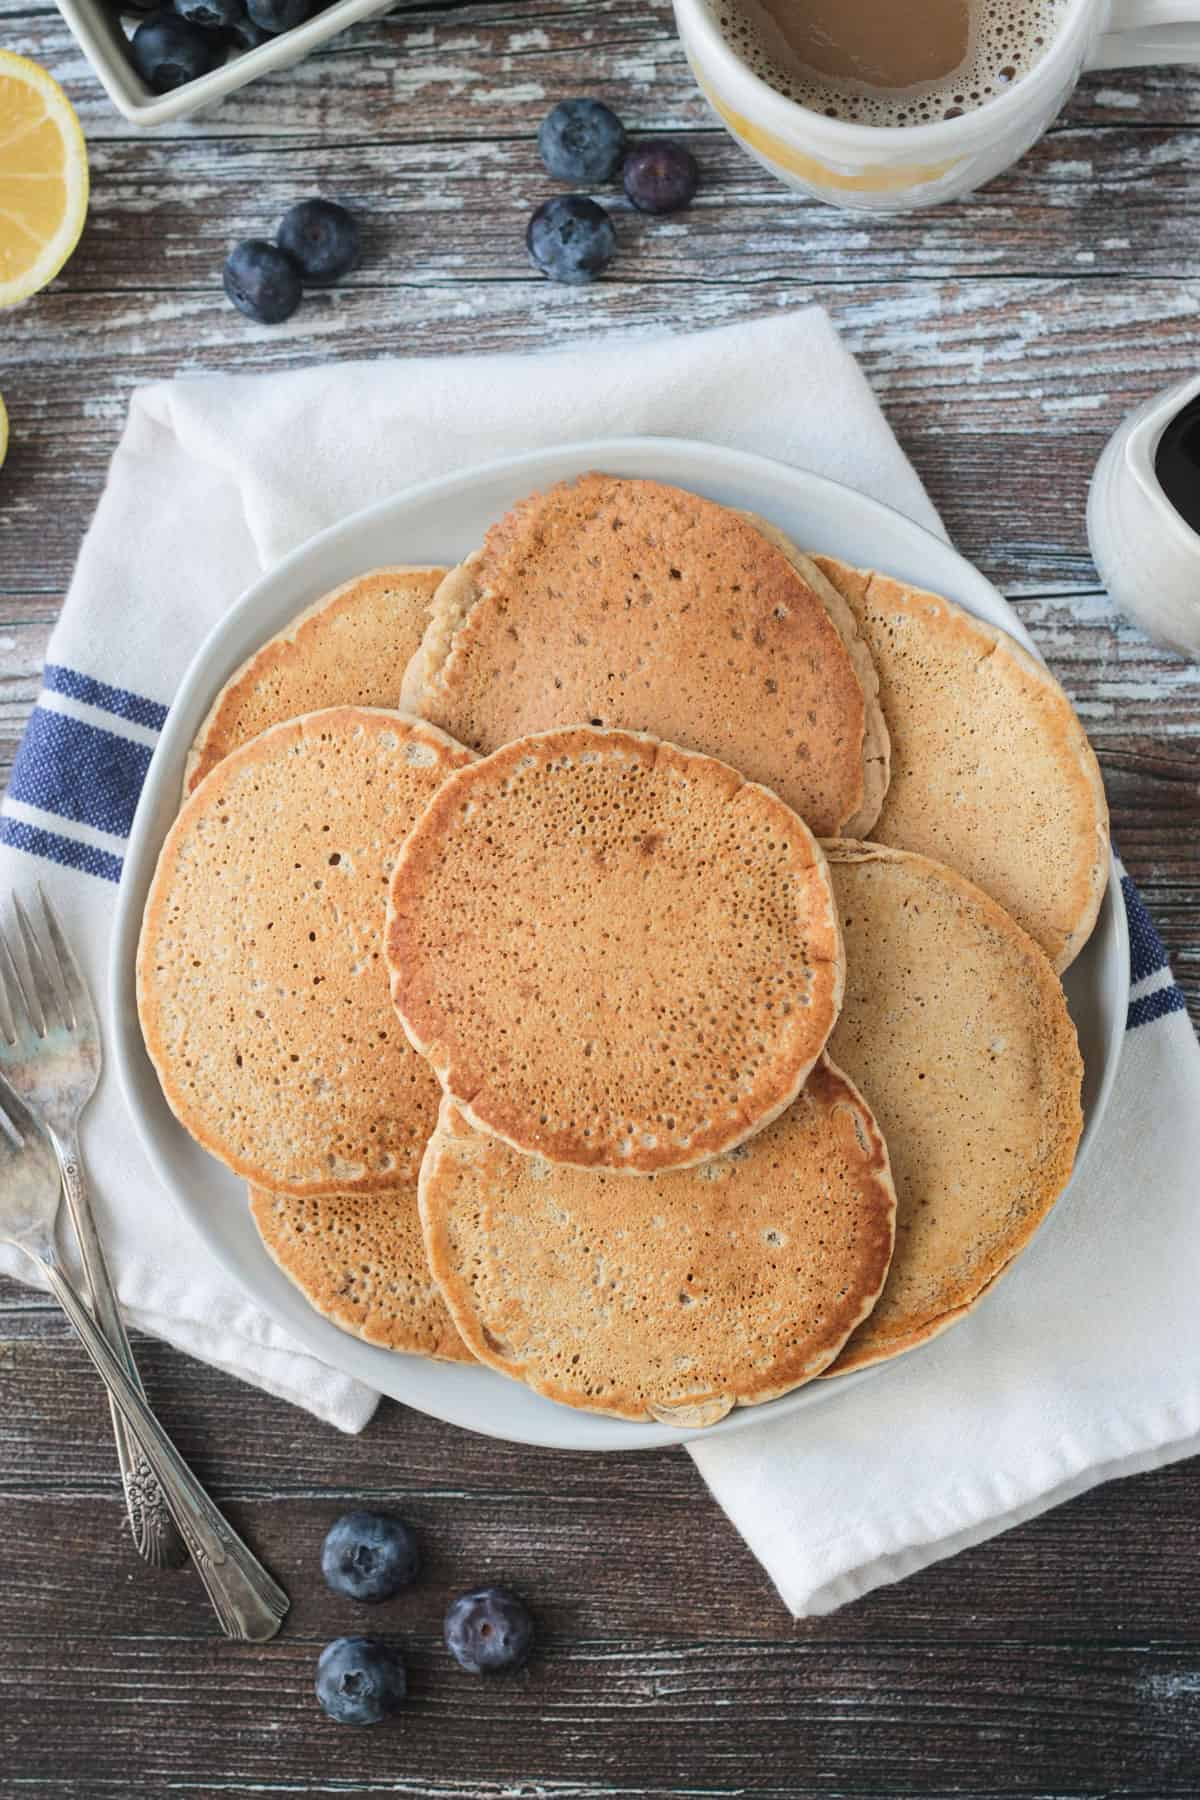 Pile of pancakes on a plate.